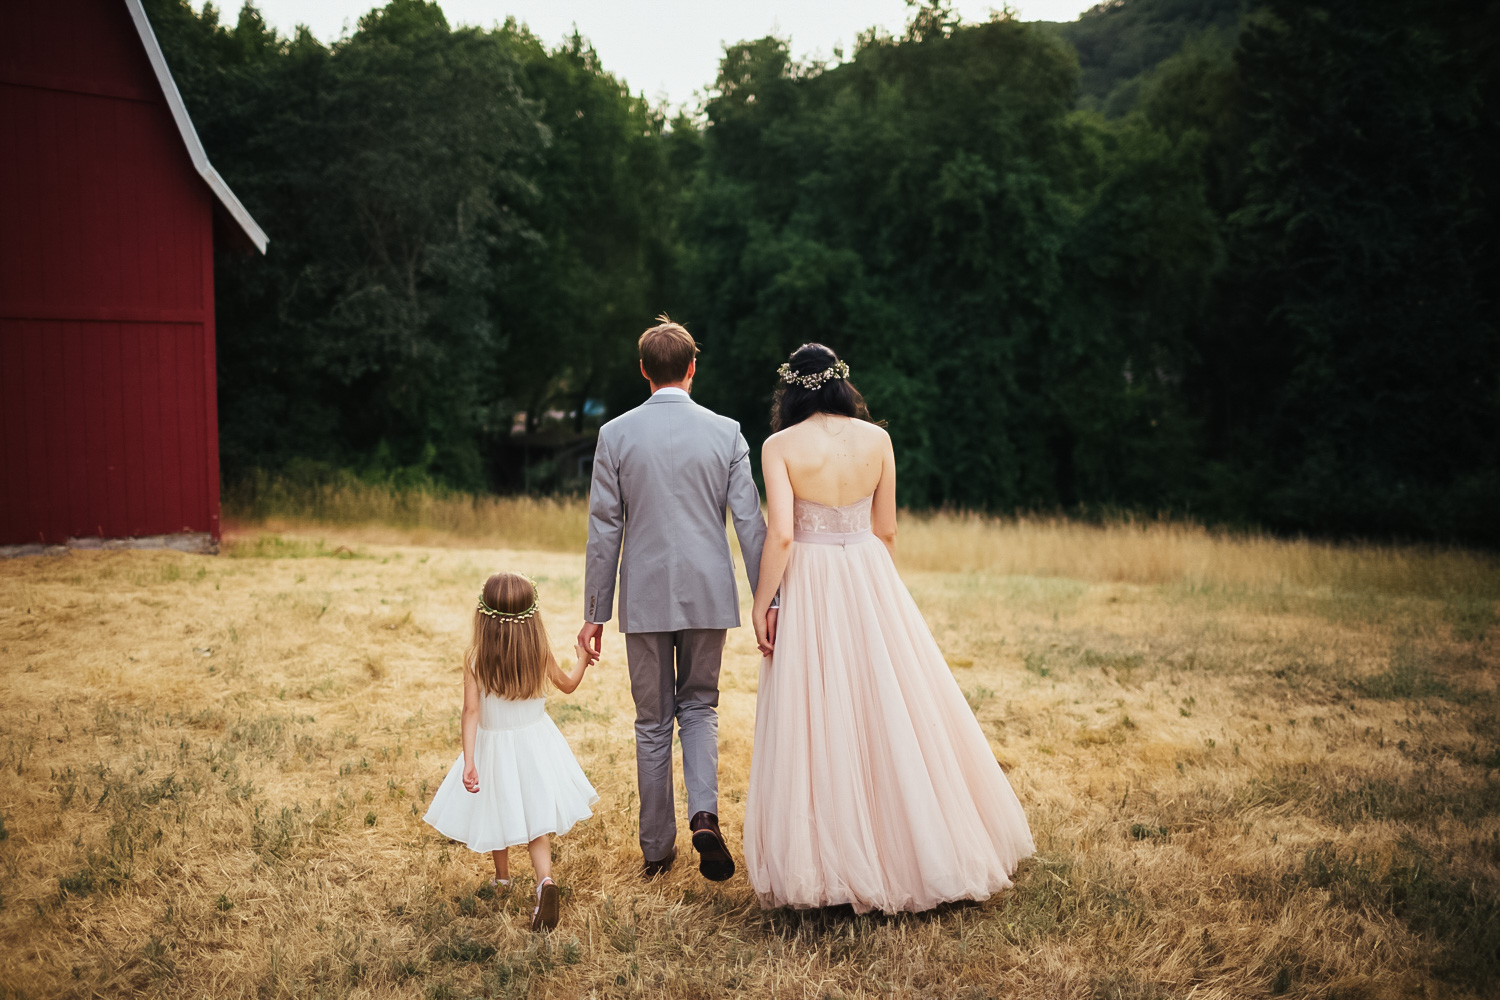 mendocino-county-wedding-photographer-natural-light-5.jpg